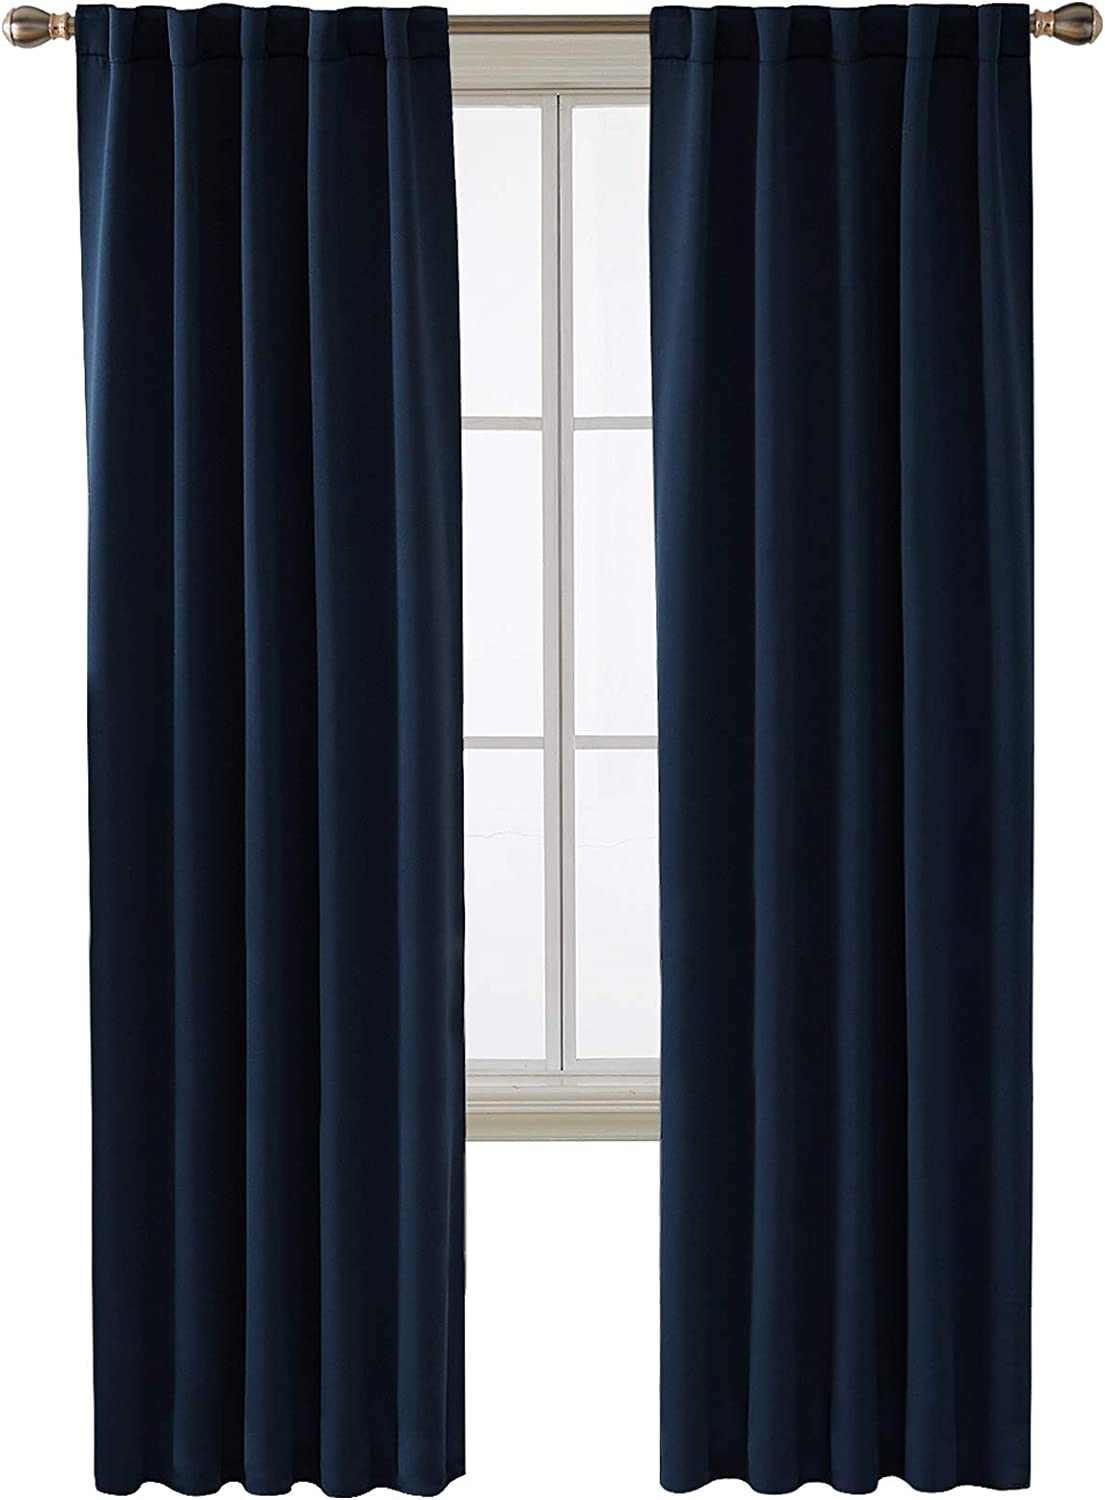 Deconovo Back Tab and Rod Pocket Blackout Curtains for Living Room Thermal Insulated Light Blocking Curtains 42x84 Inch Navy Blue 2 Panels